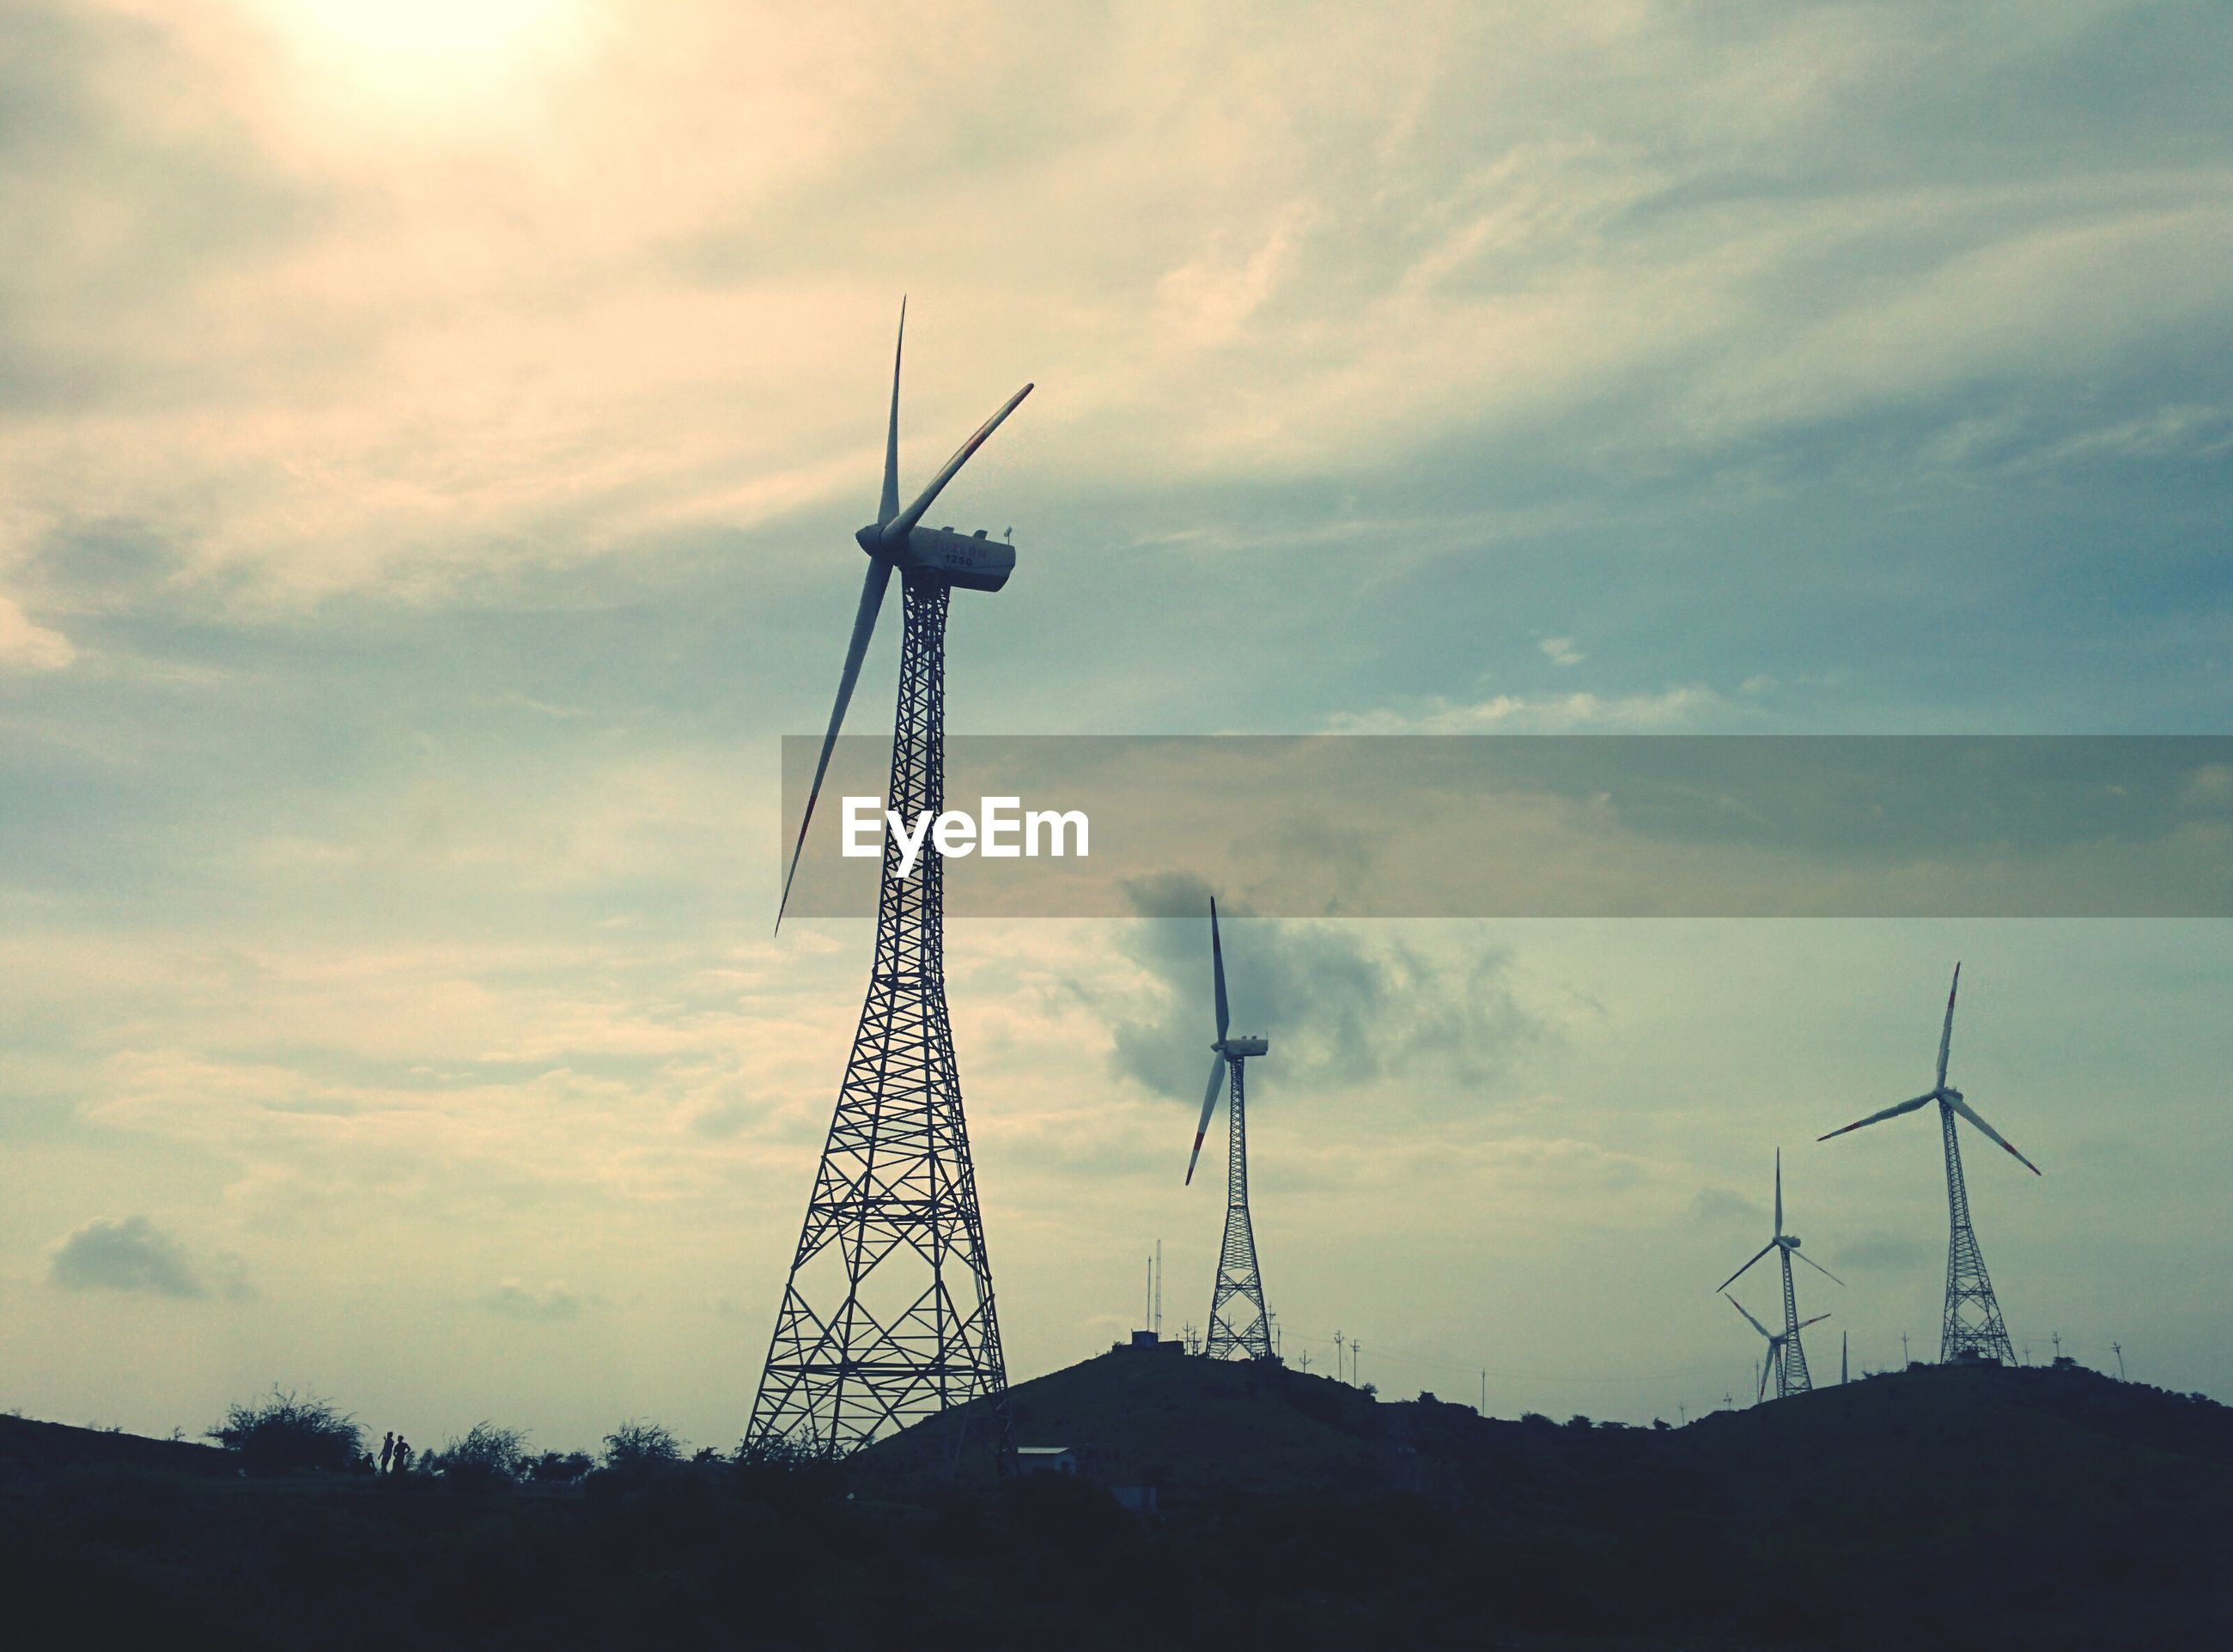 Low angle view of wind turbines against cloudy sky